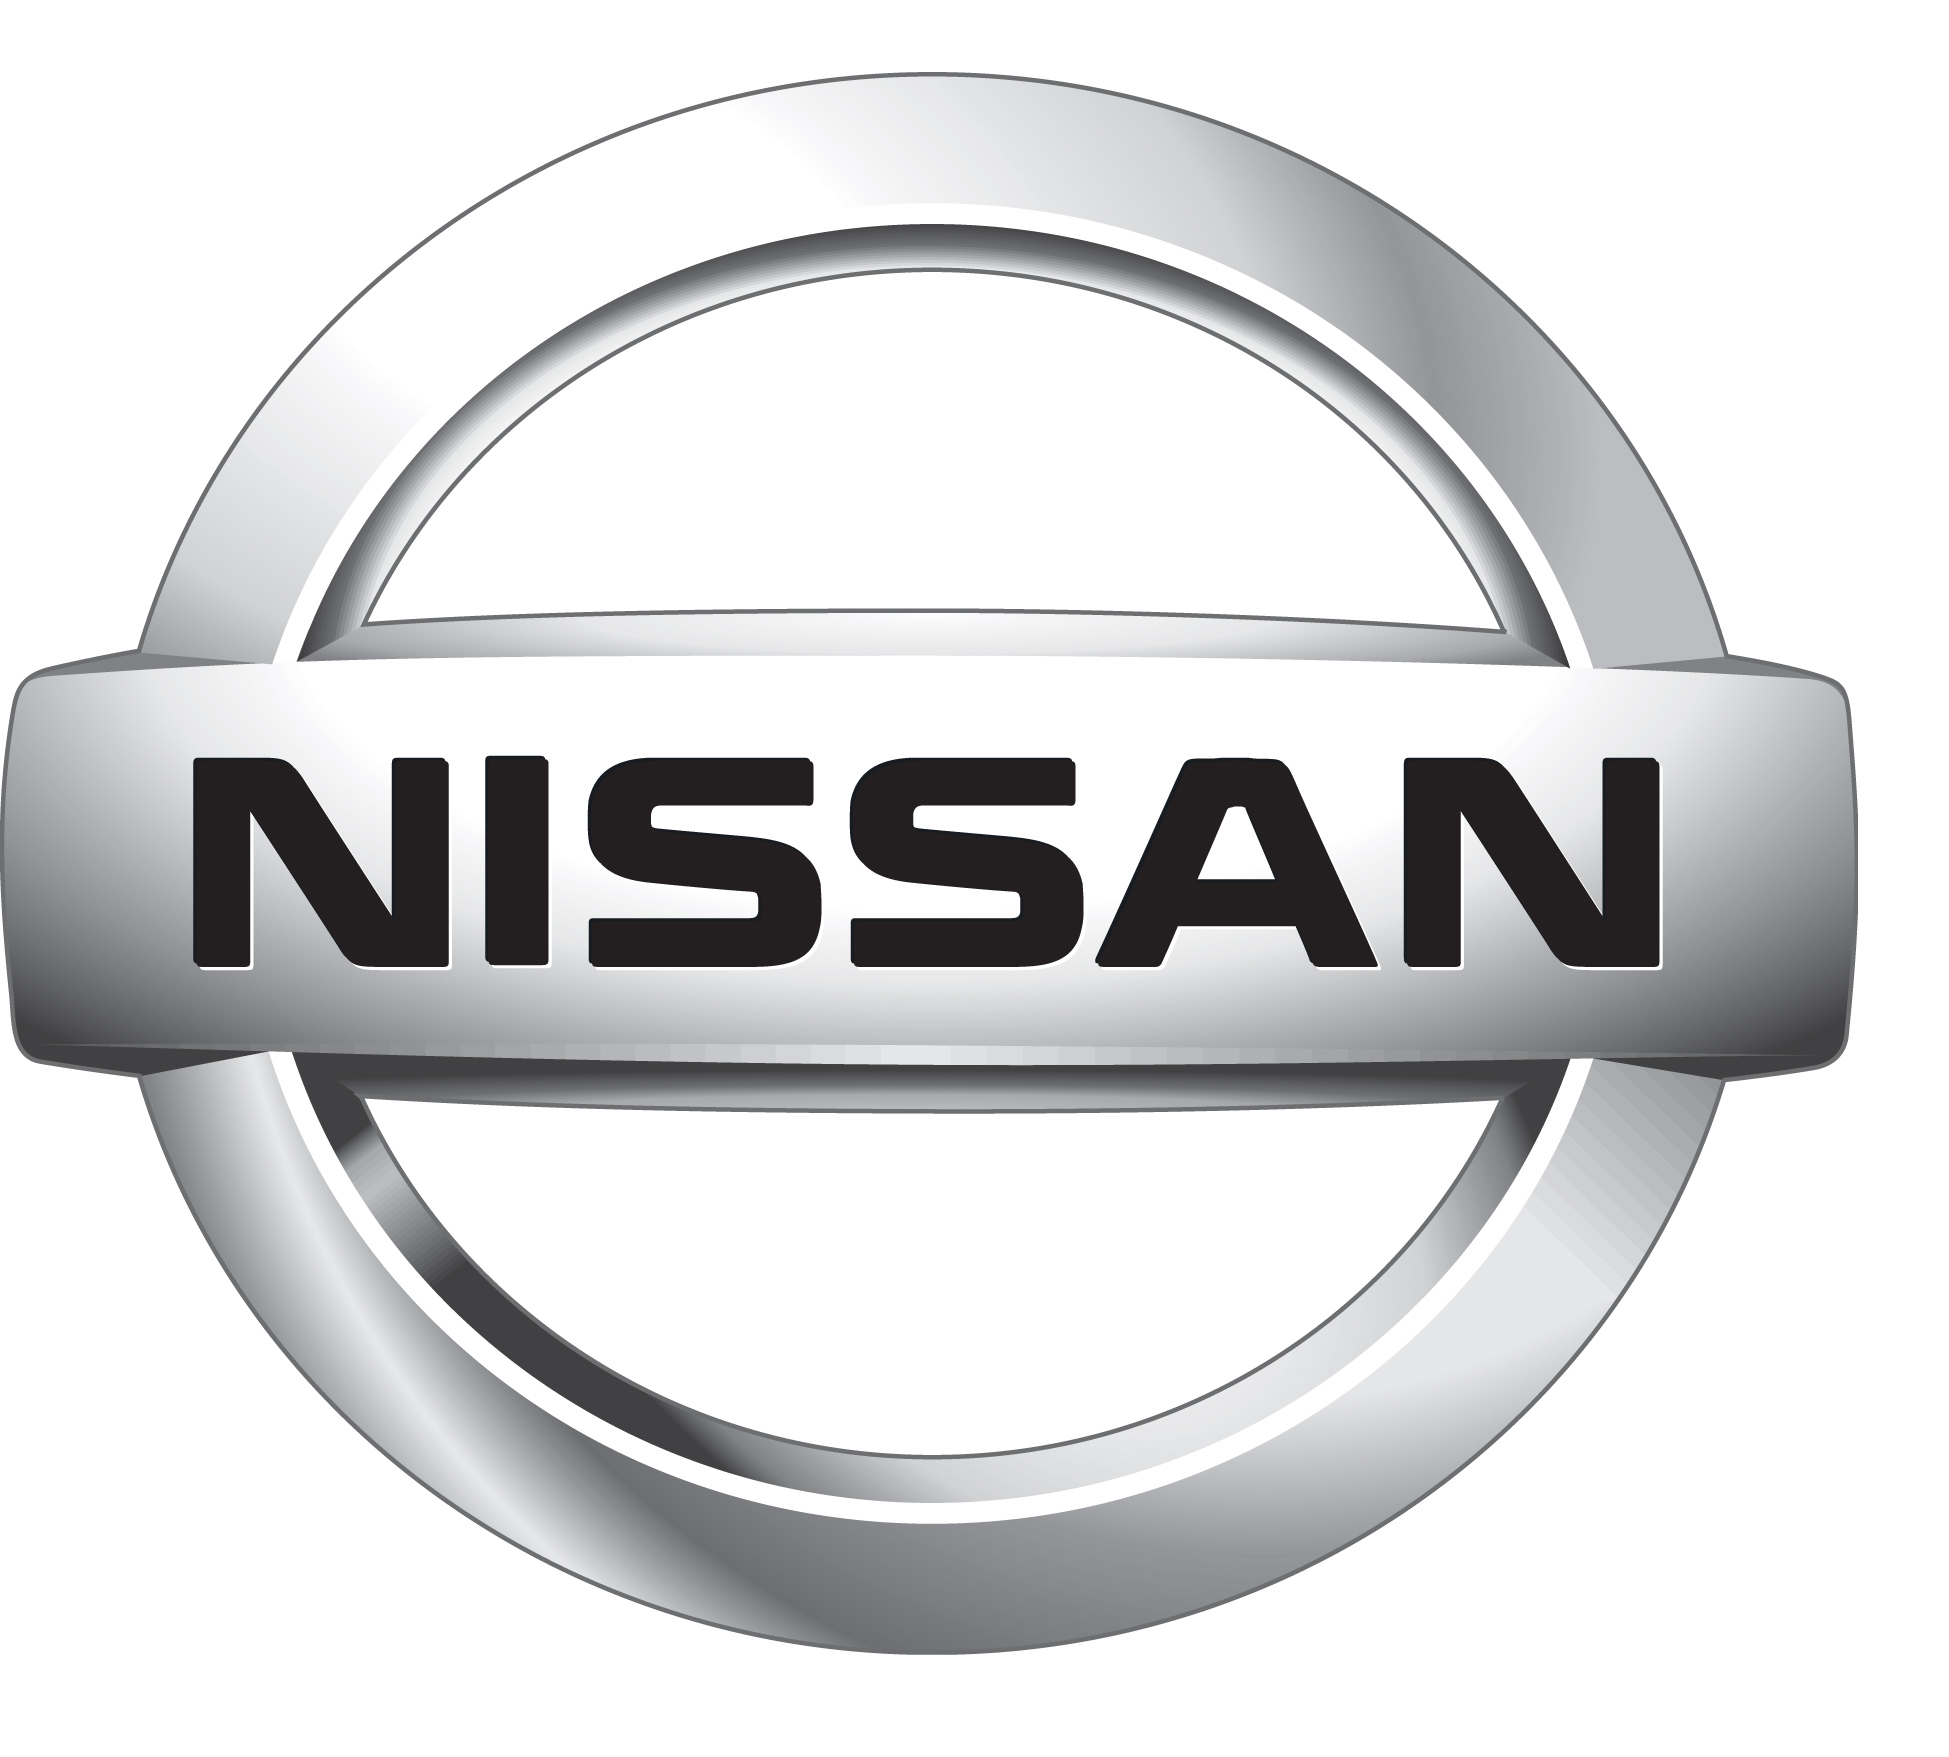 Behind the Badge: Unexpected Meanings of Datsun/Nissan Names ...